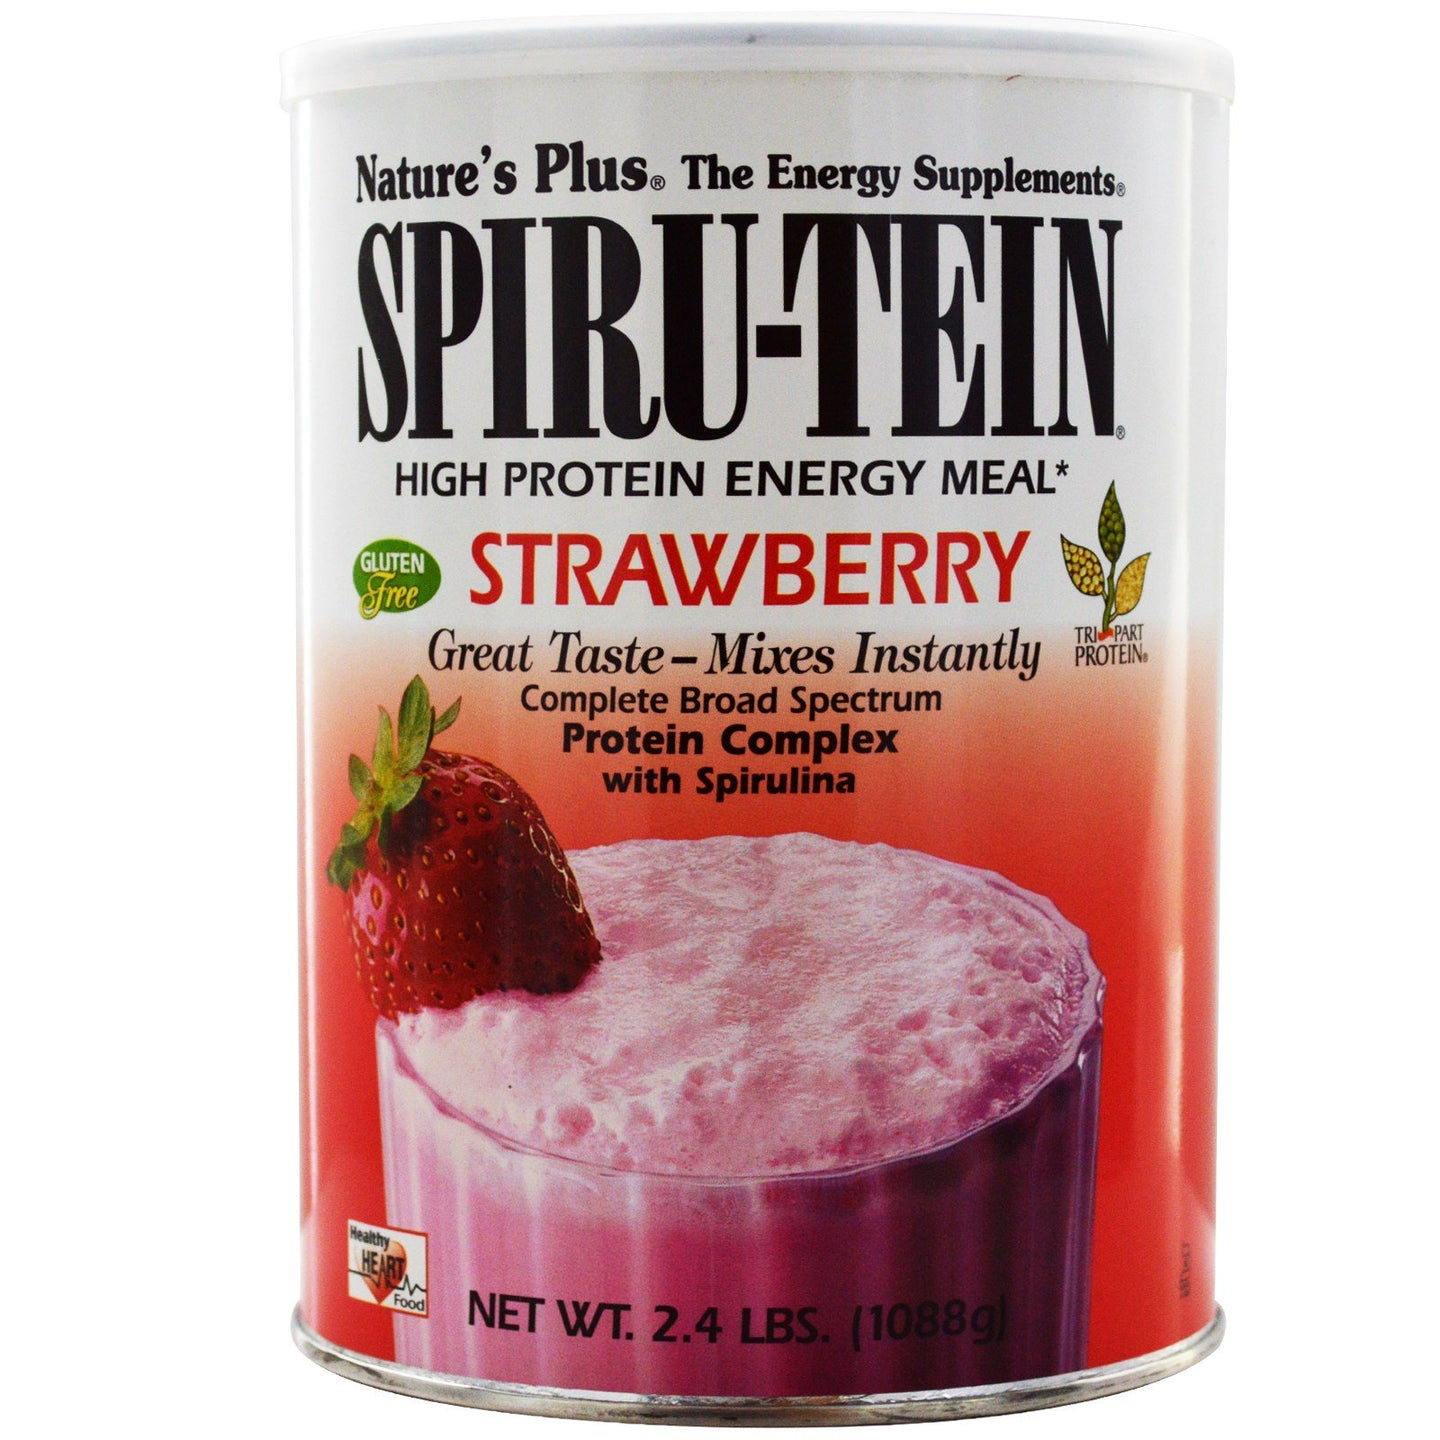 Nature's Plus Spiru-tein Strawberry 2 LBS